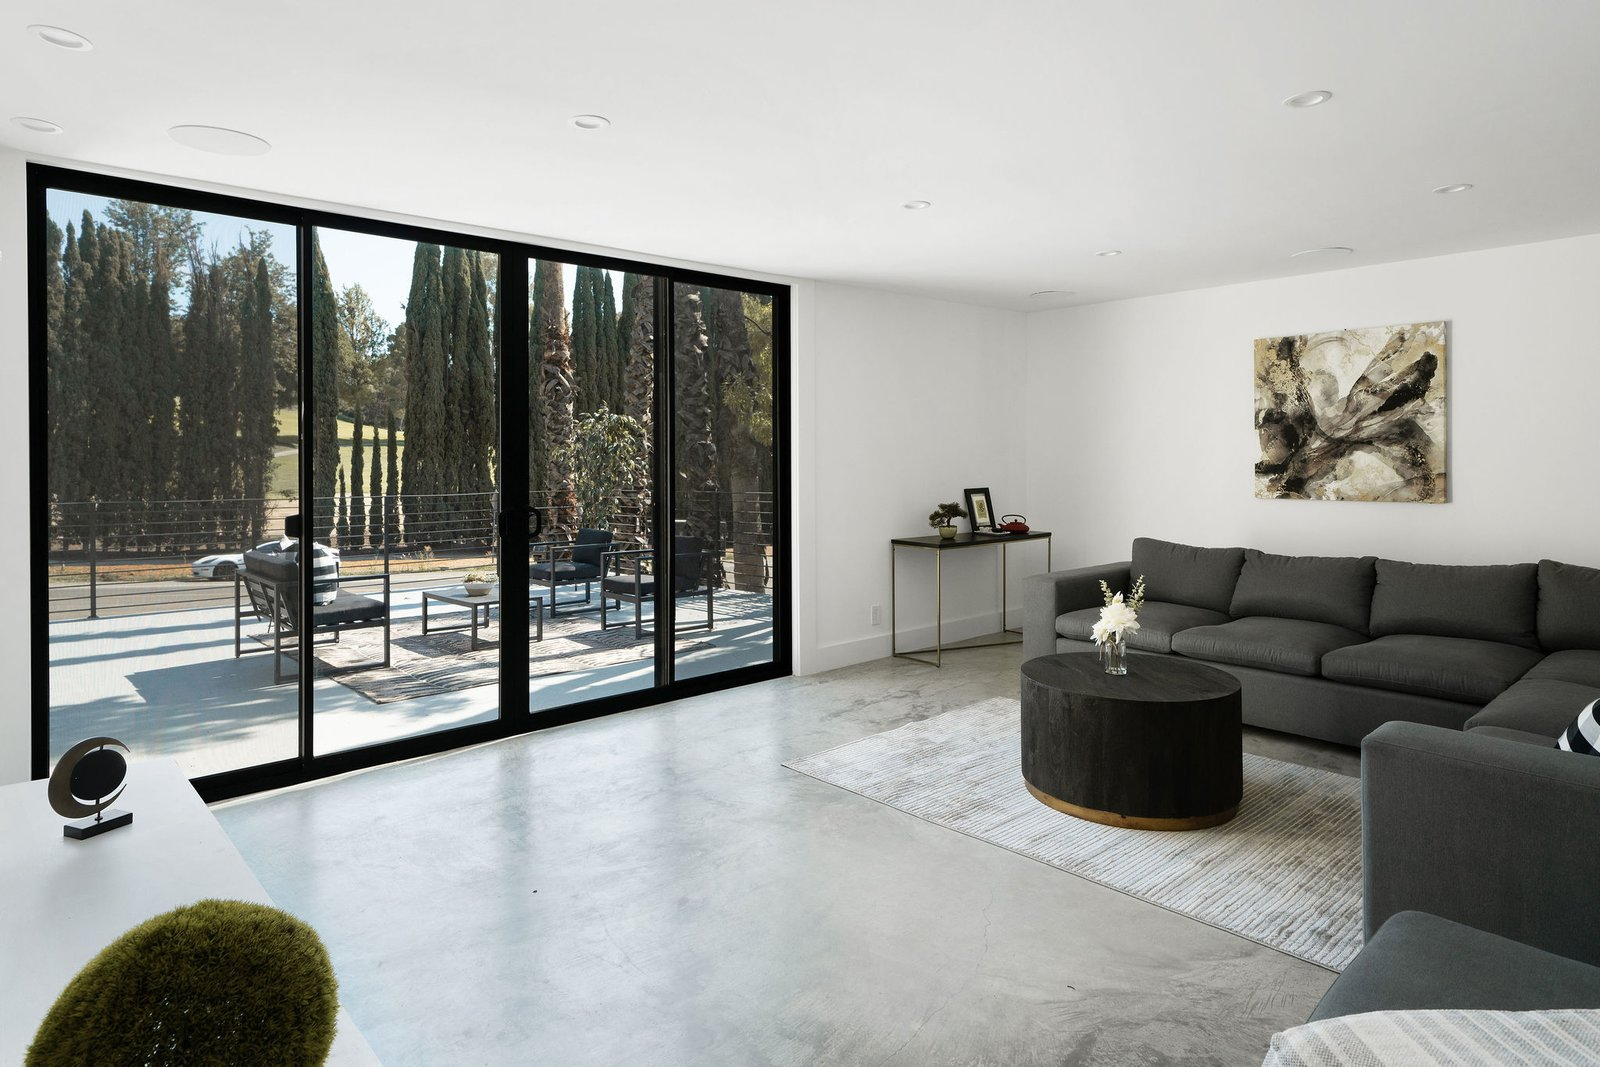 New sliding glass doors provide direct access to the front deck.  Photo 19 of 25 in Before & After: Two Brothers List Their Swanky Midcentury Bachelor Pad for $1.6M